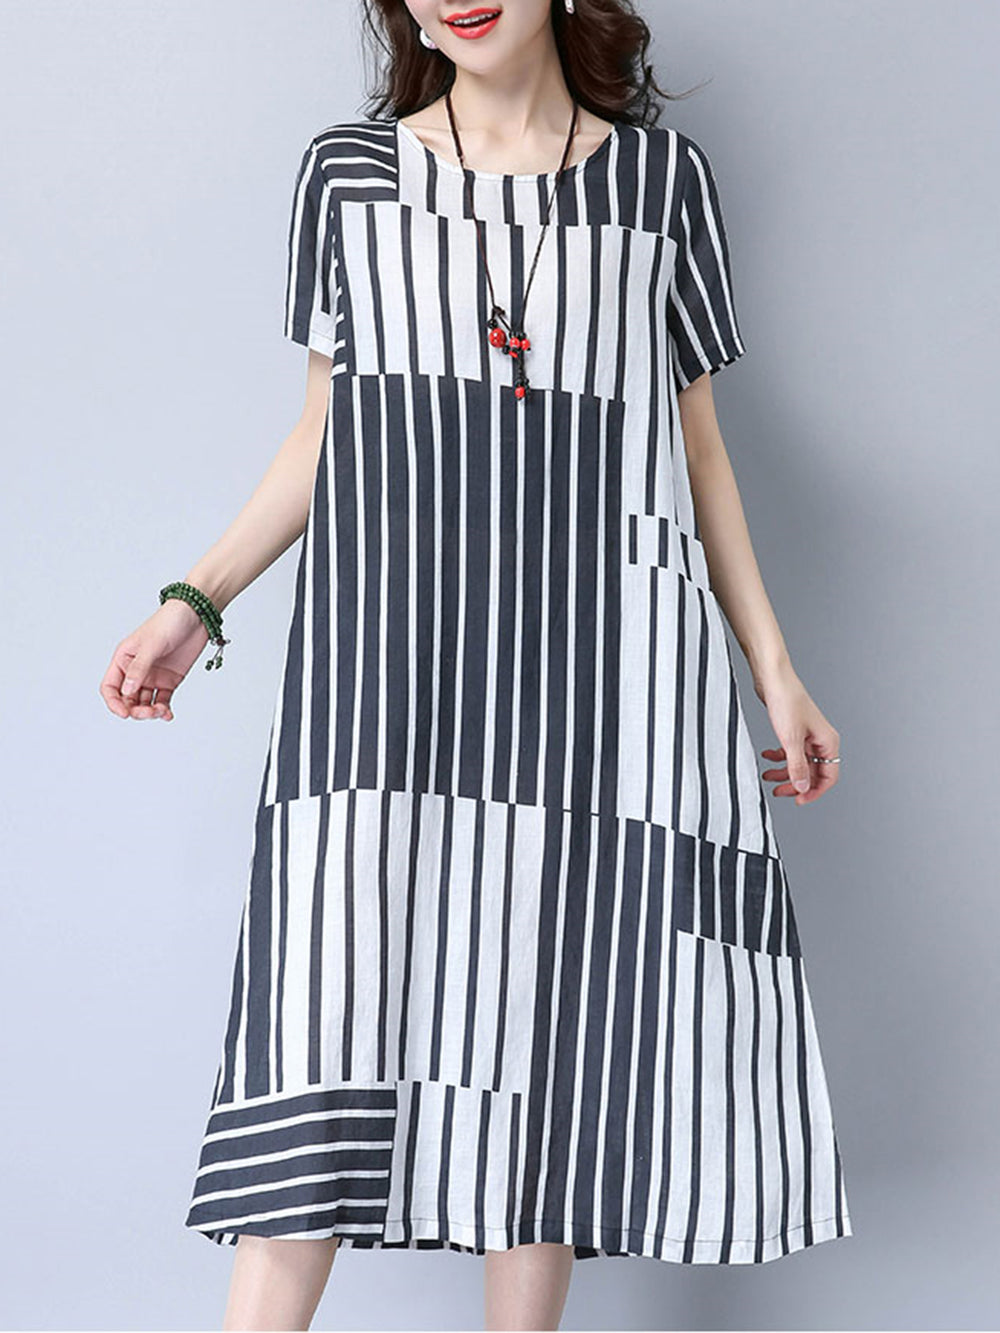 Black A-line Stripes Short Sleeve Casual Dress